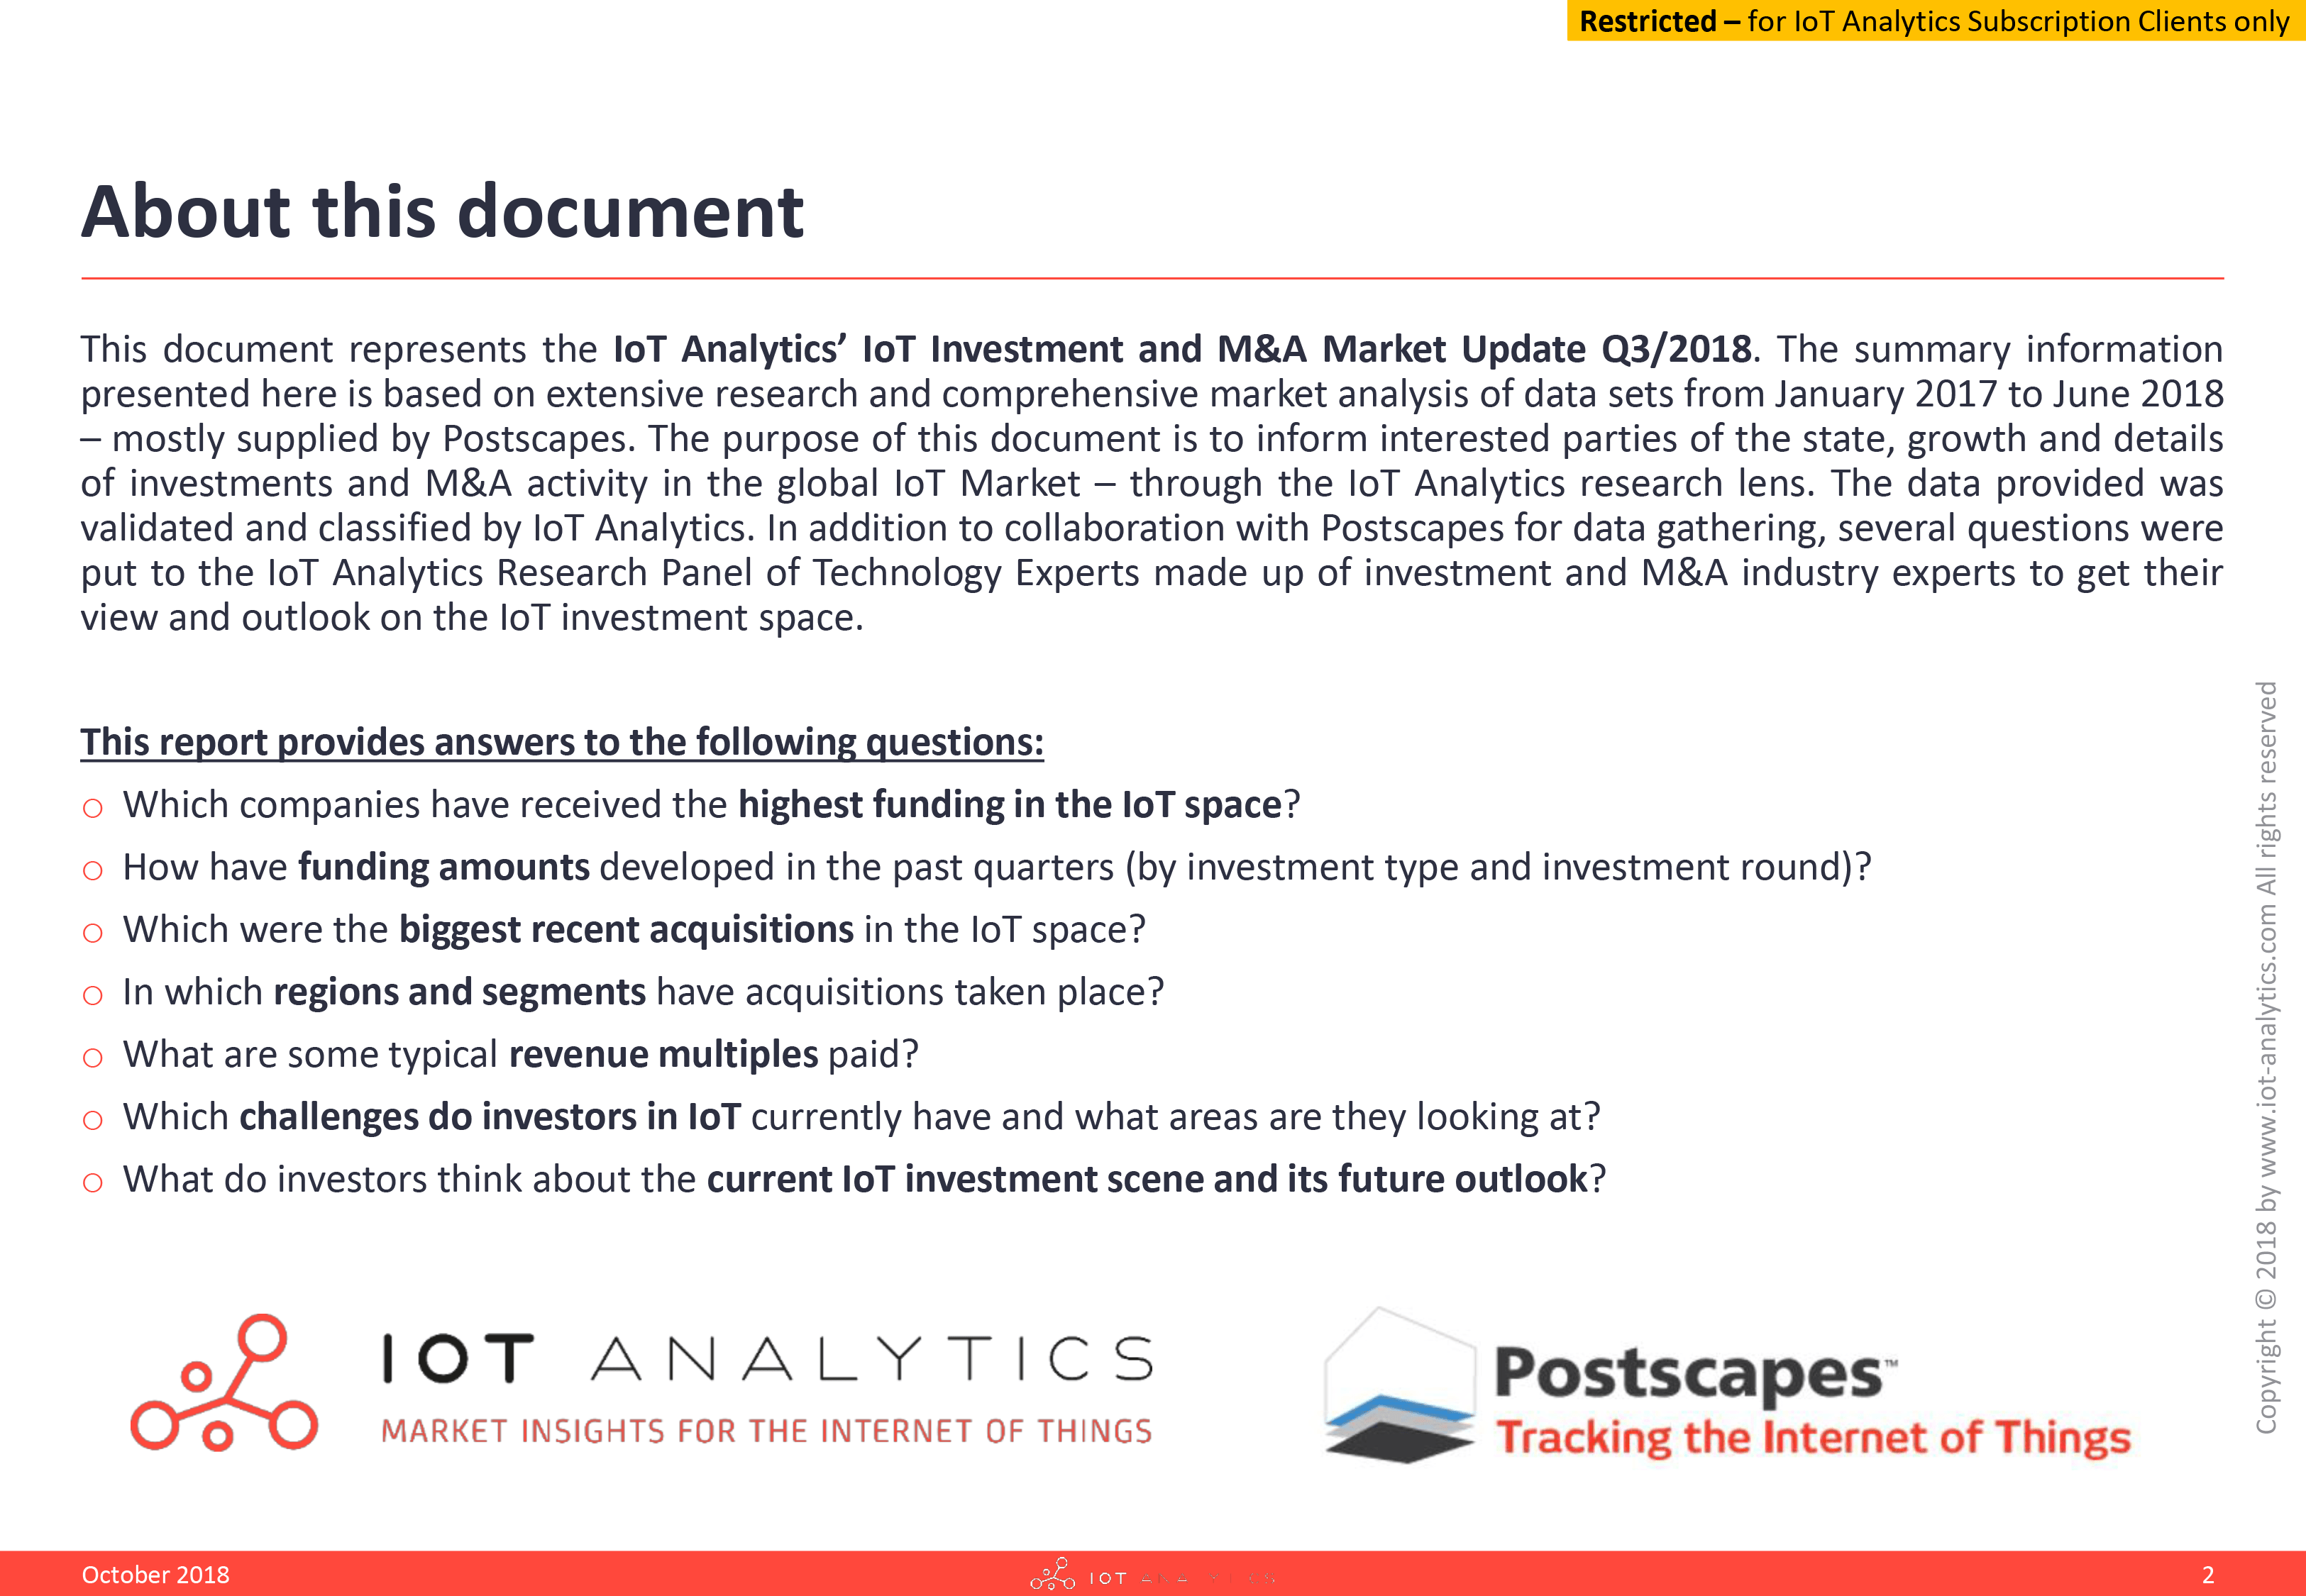 IoT Investments Report 2018 - October 2018 - About this document